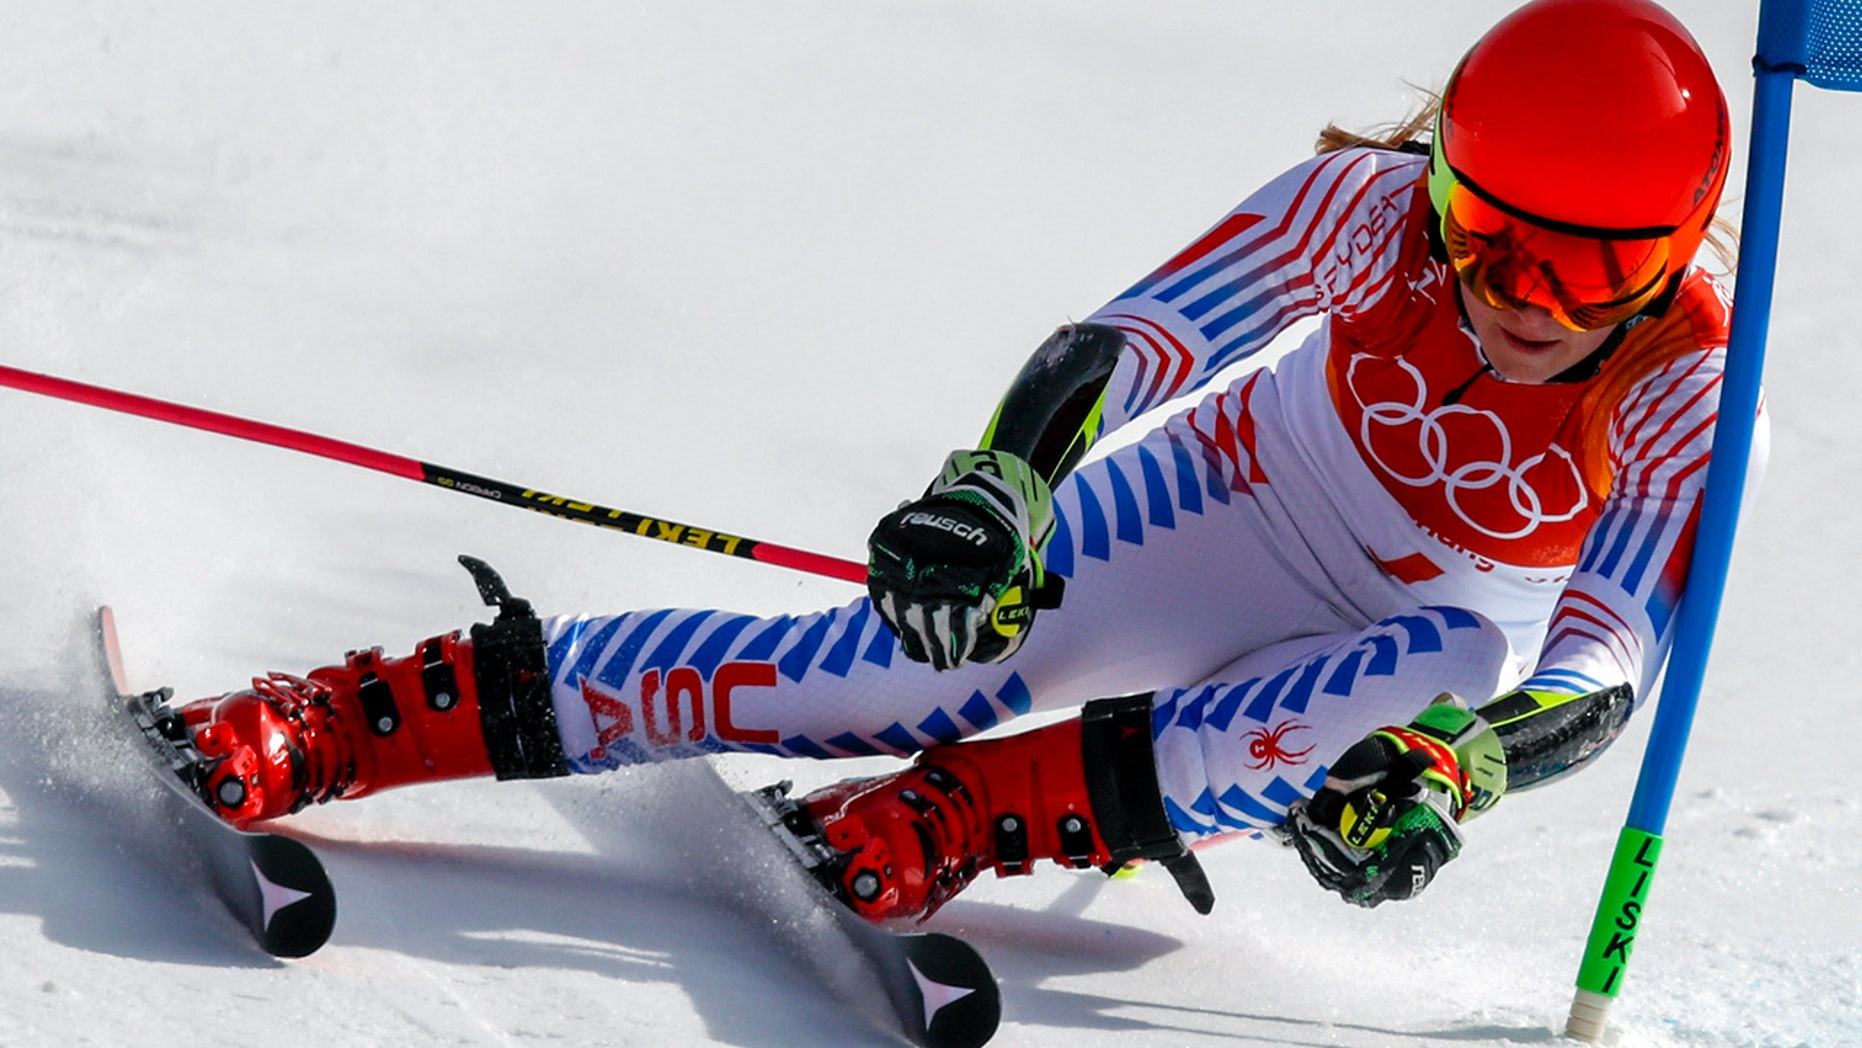 Mikaela Shiffrin, of the United States, attacks the gate during the second run of the Women's Giant Slalom at the 2018 Winter Olympics in Pyeongchang, South Korea, Thursday, Feb. 15, 2018.